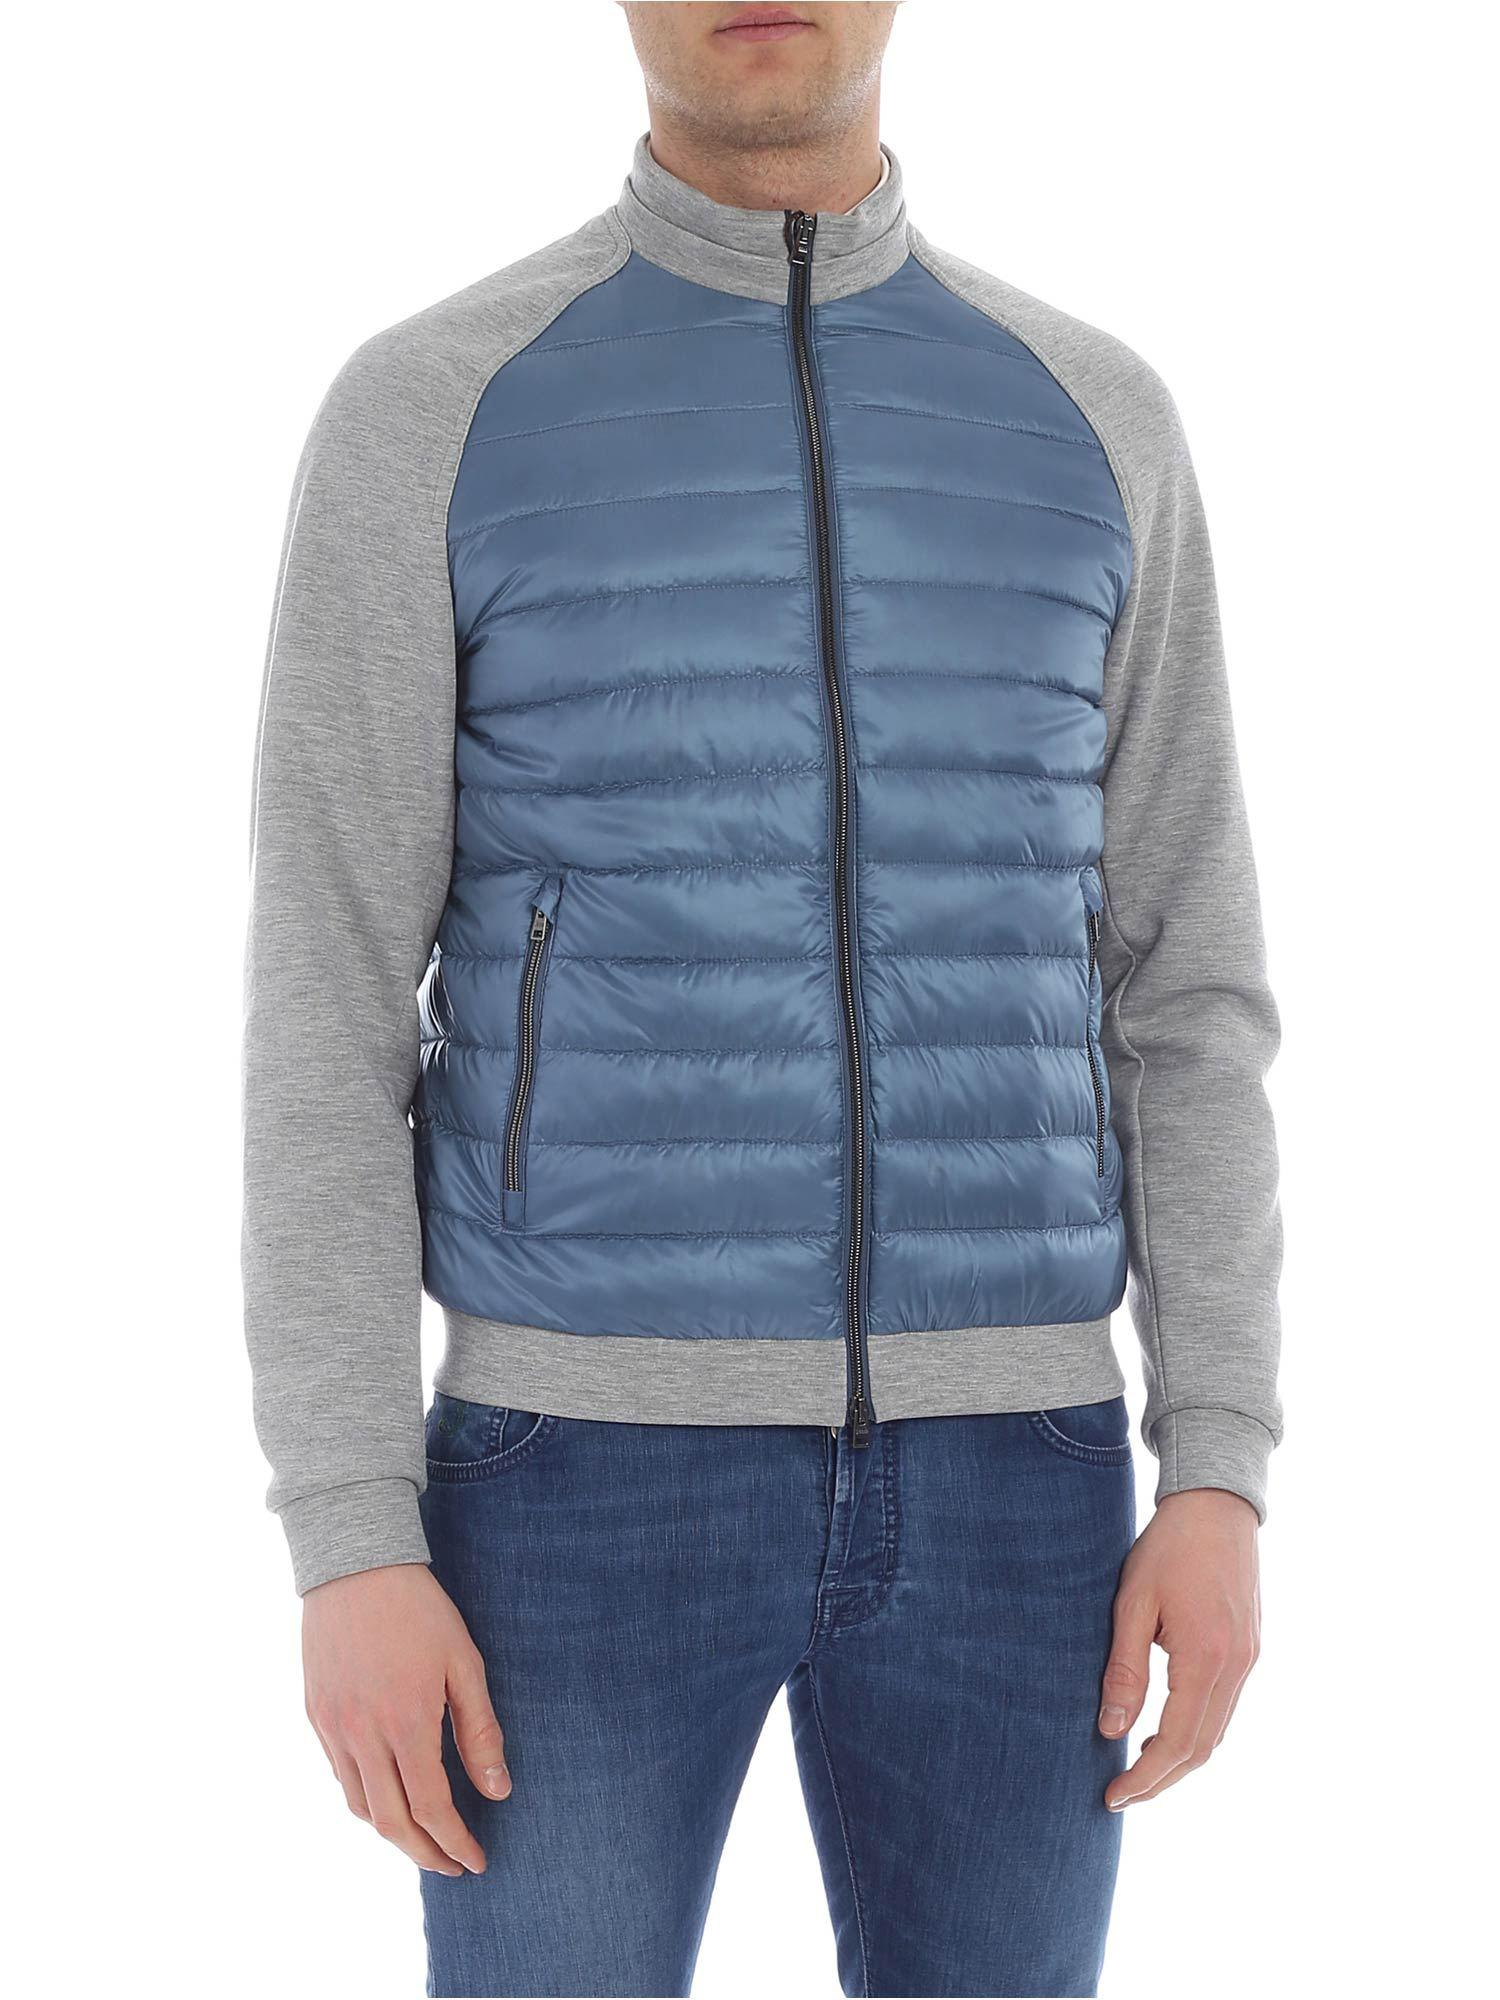 2c3147f449c902 herno-blue-Light-Blue-Down-Jacket-With-Grey-Cotton-Inserts.jpeg